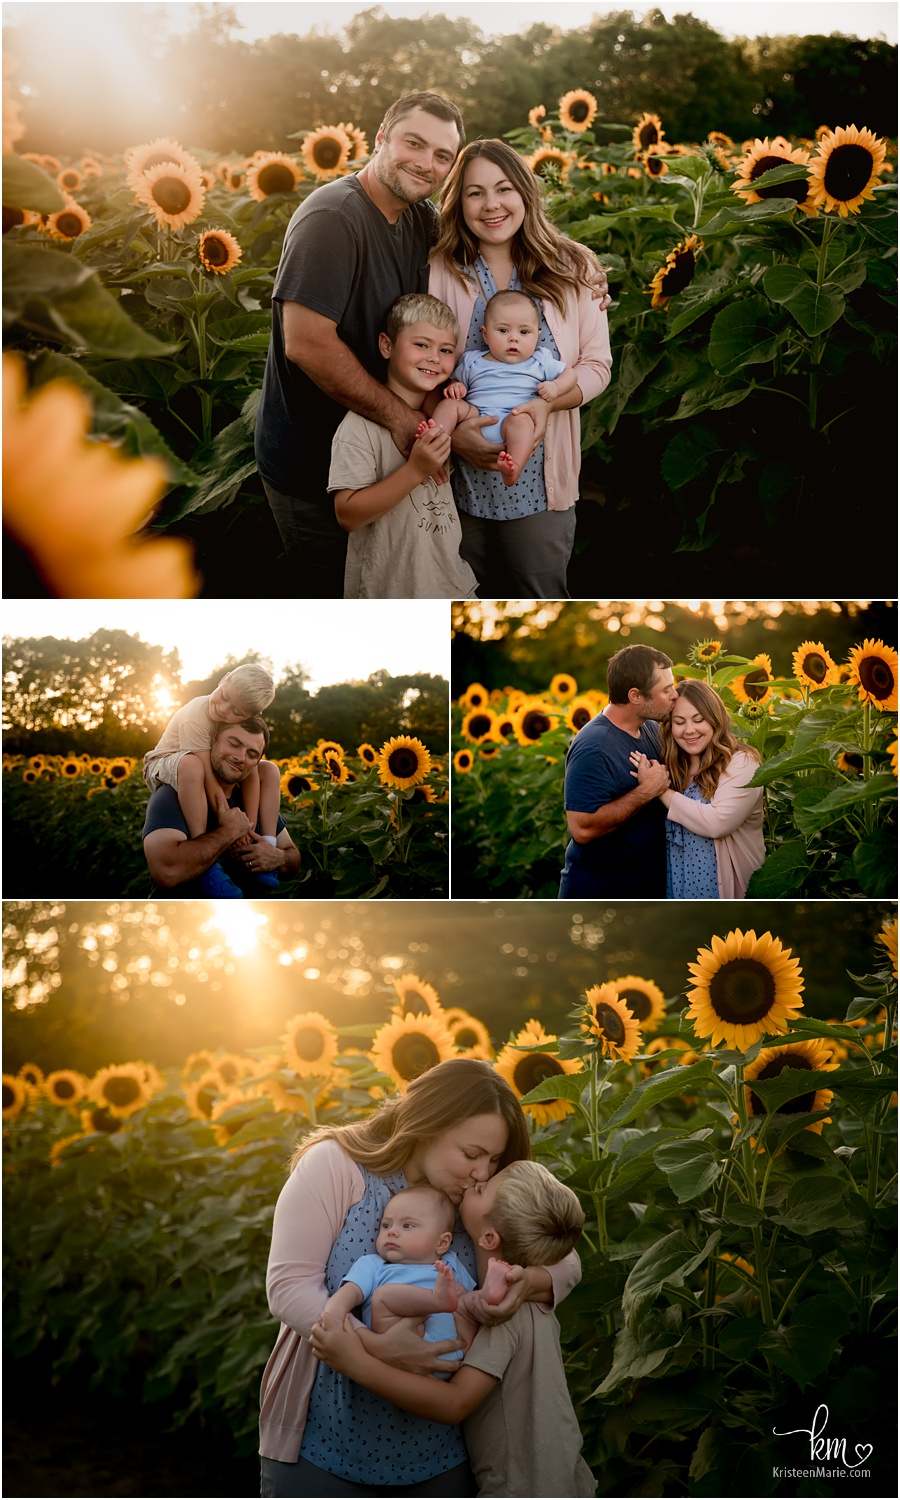 Family photography sunflower field at sunset